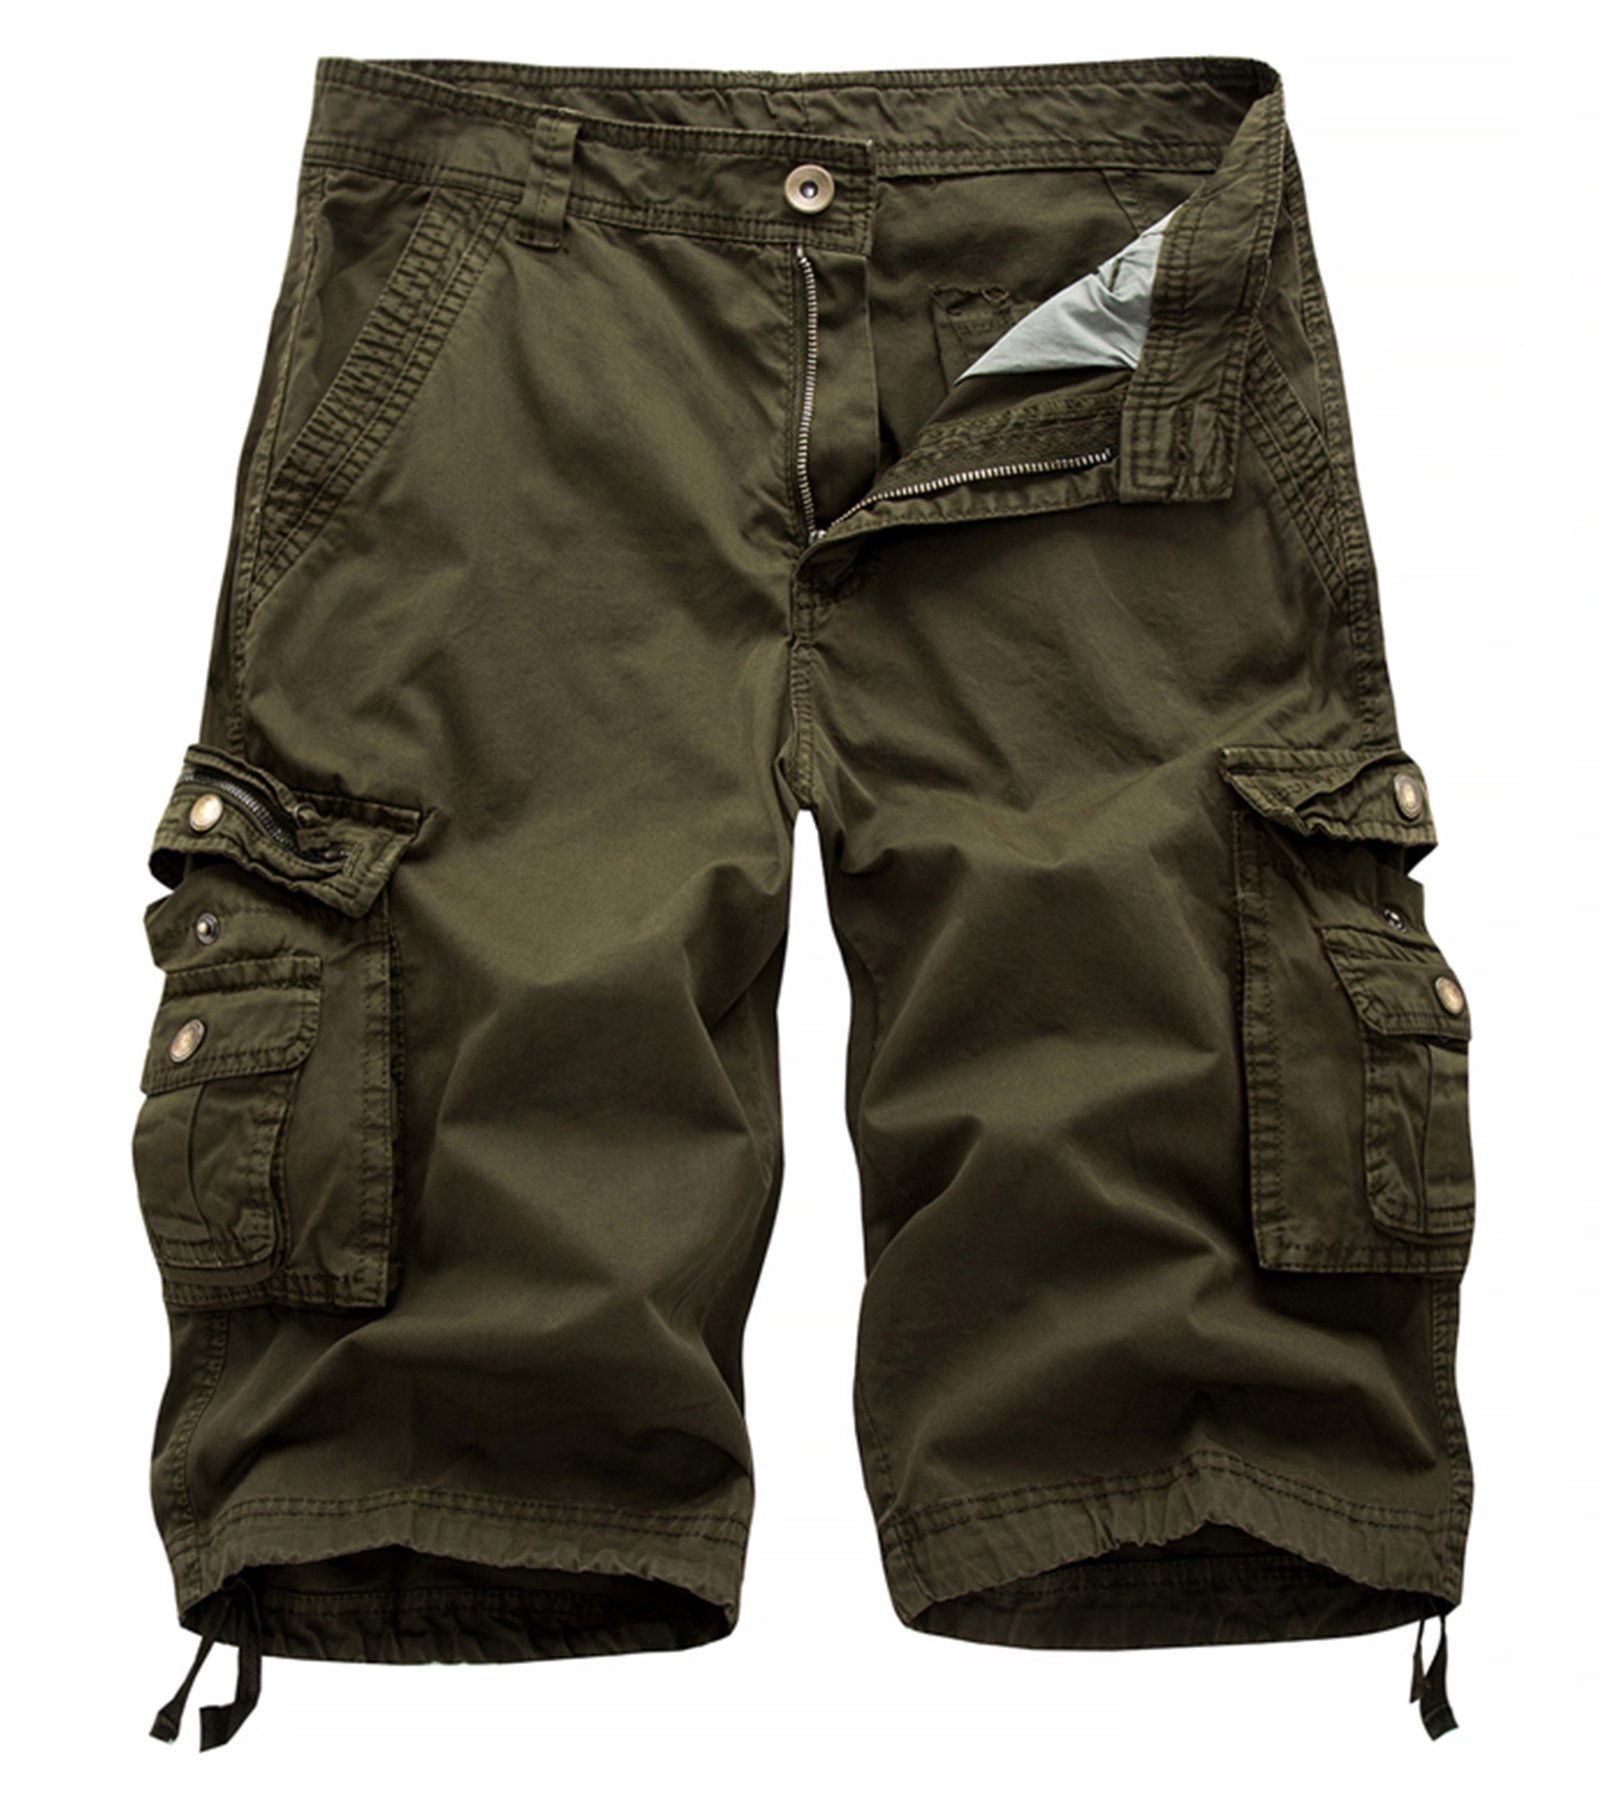 AOYOG Mens Solid MultiPocket Cargo Shorts Casual Slim Fit Cotton Solid Camo Shorts, Army Green 082, Lable size 40(US 38)